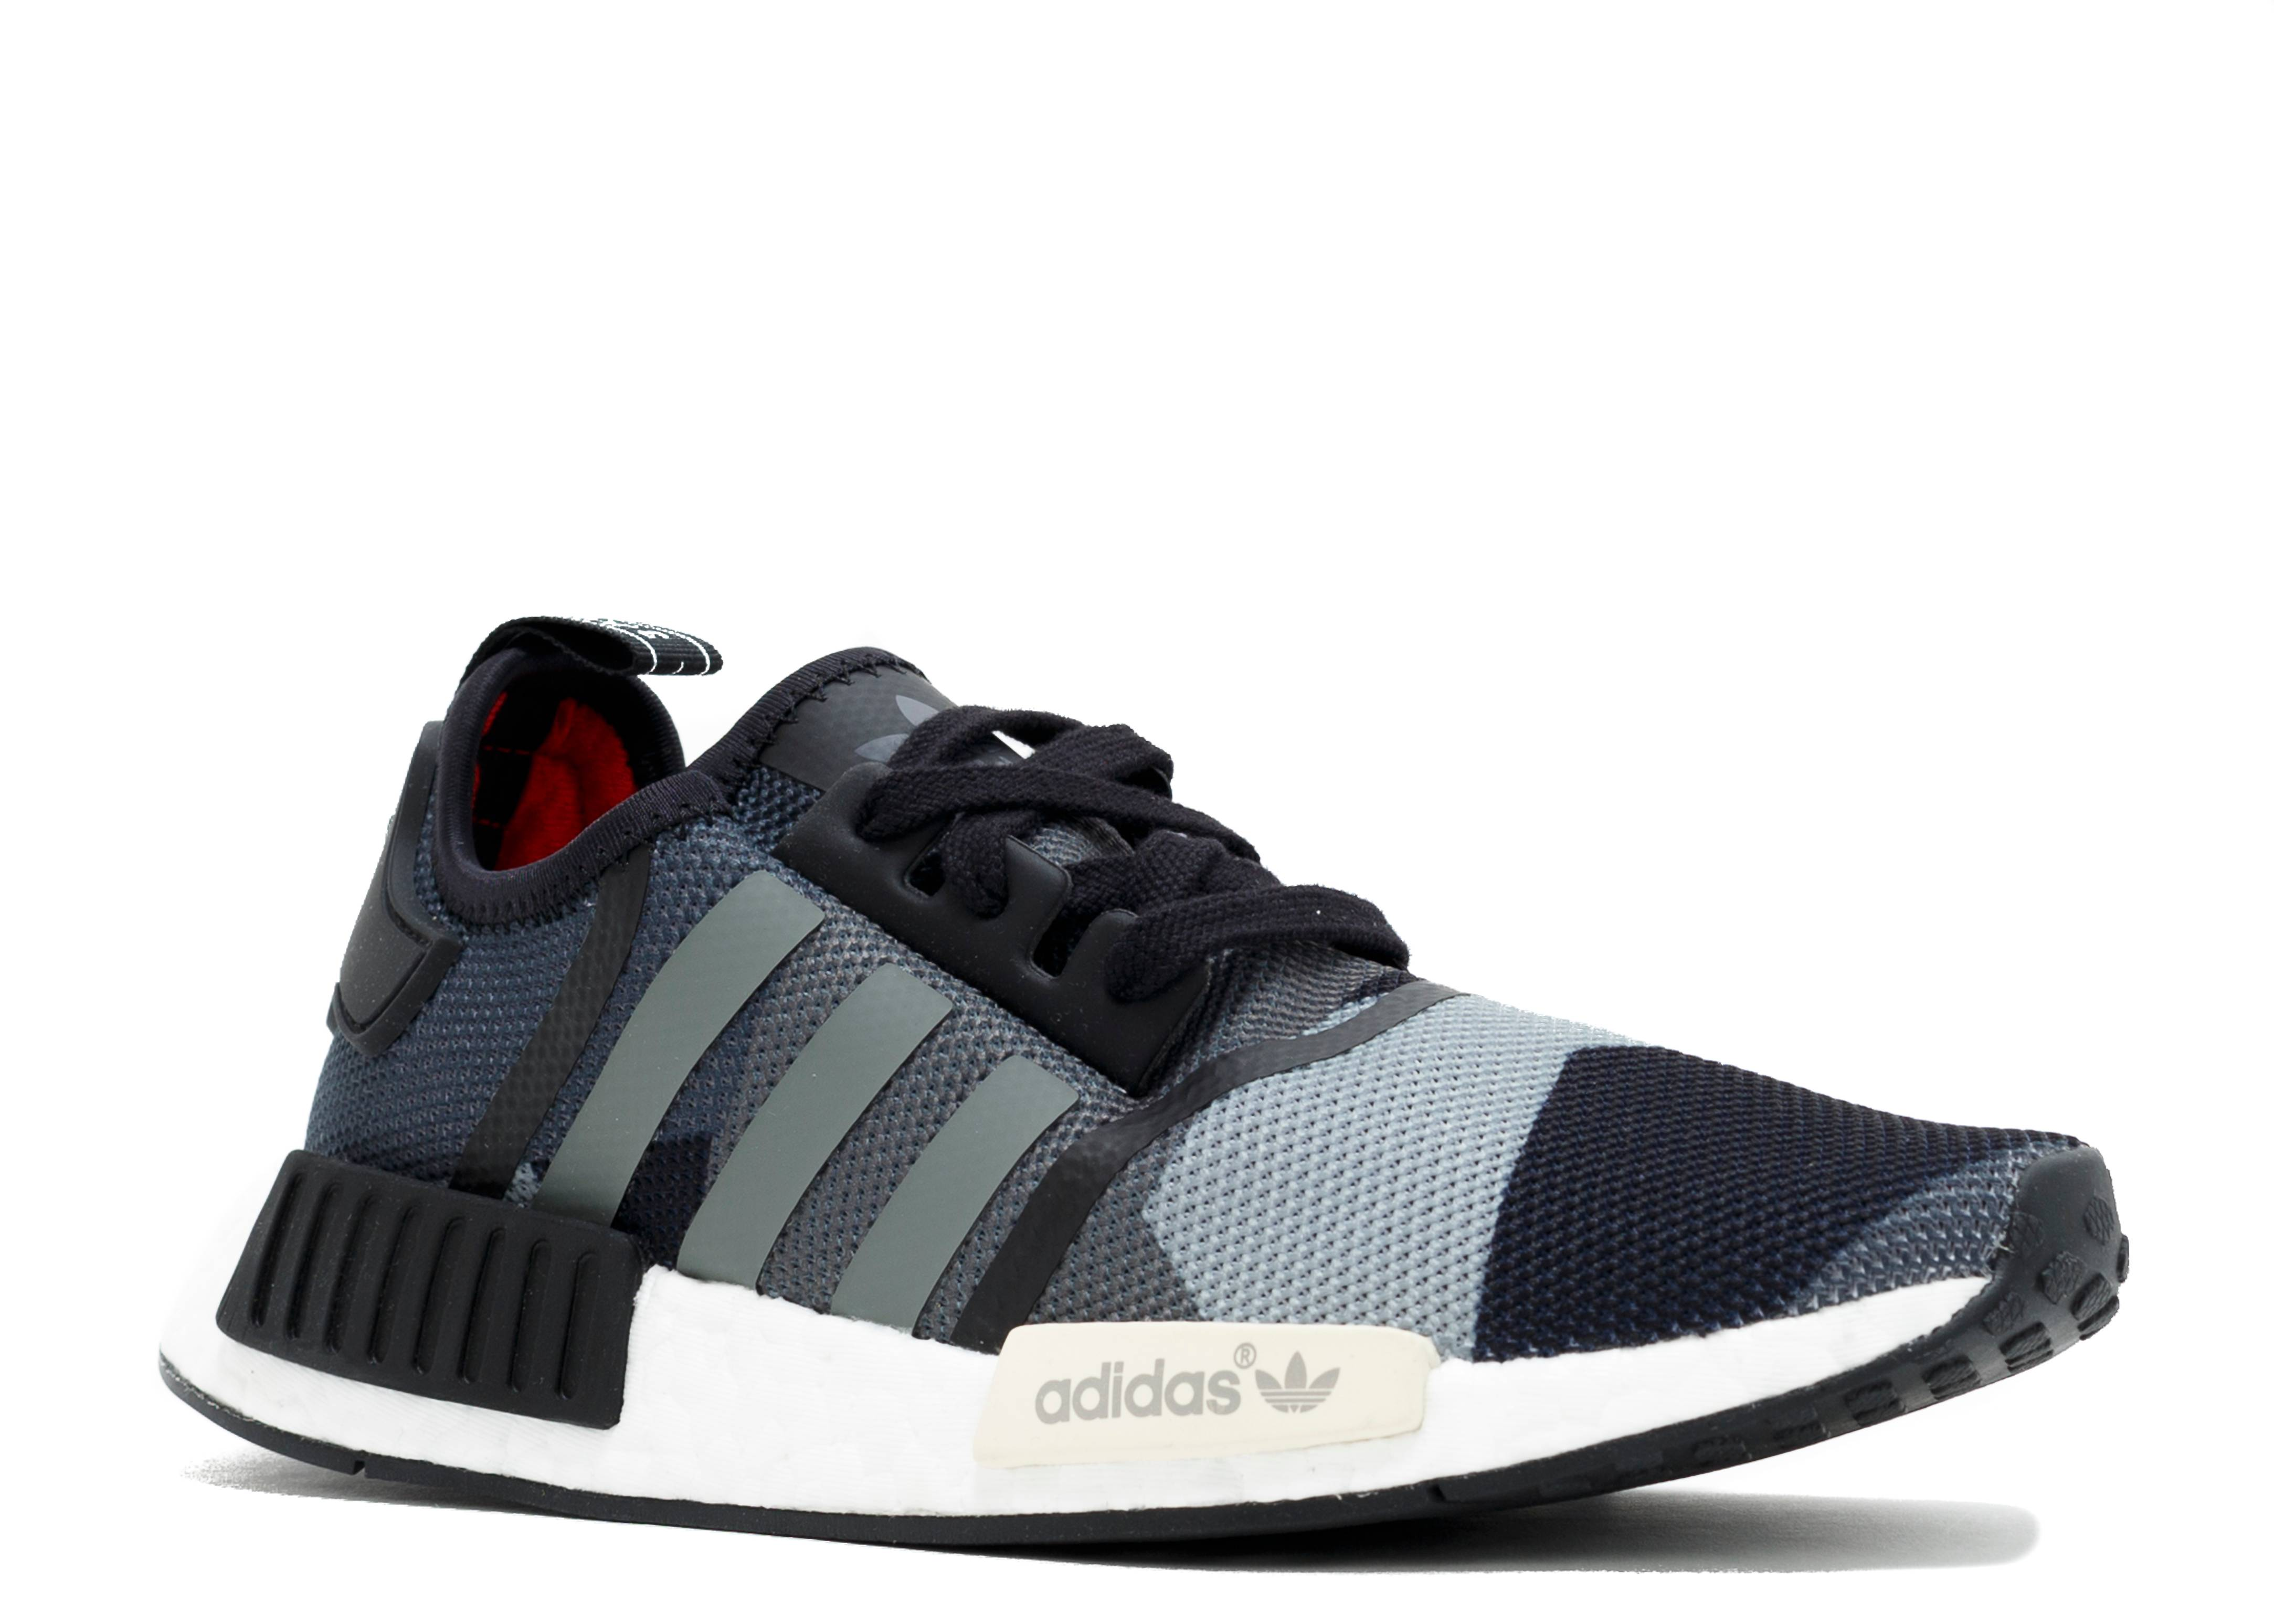 f77a54d64 Gucci x Adidas NMD R1 Special Edition.uk  Shoes   Bags